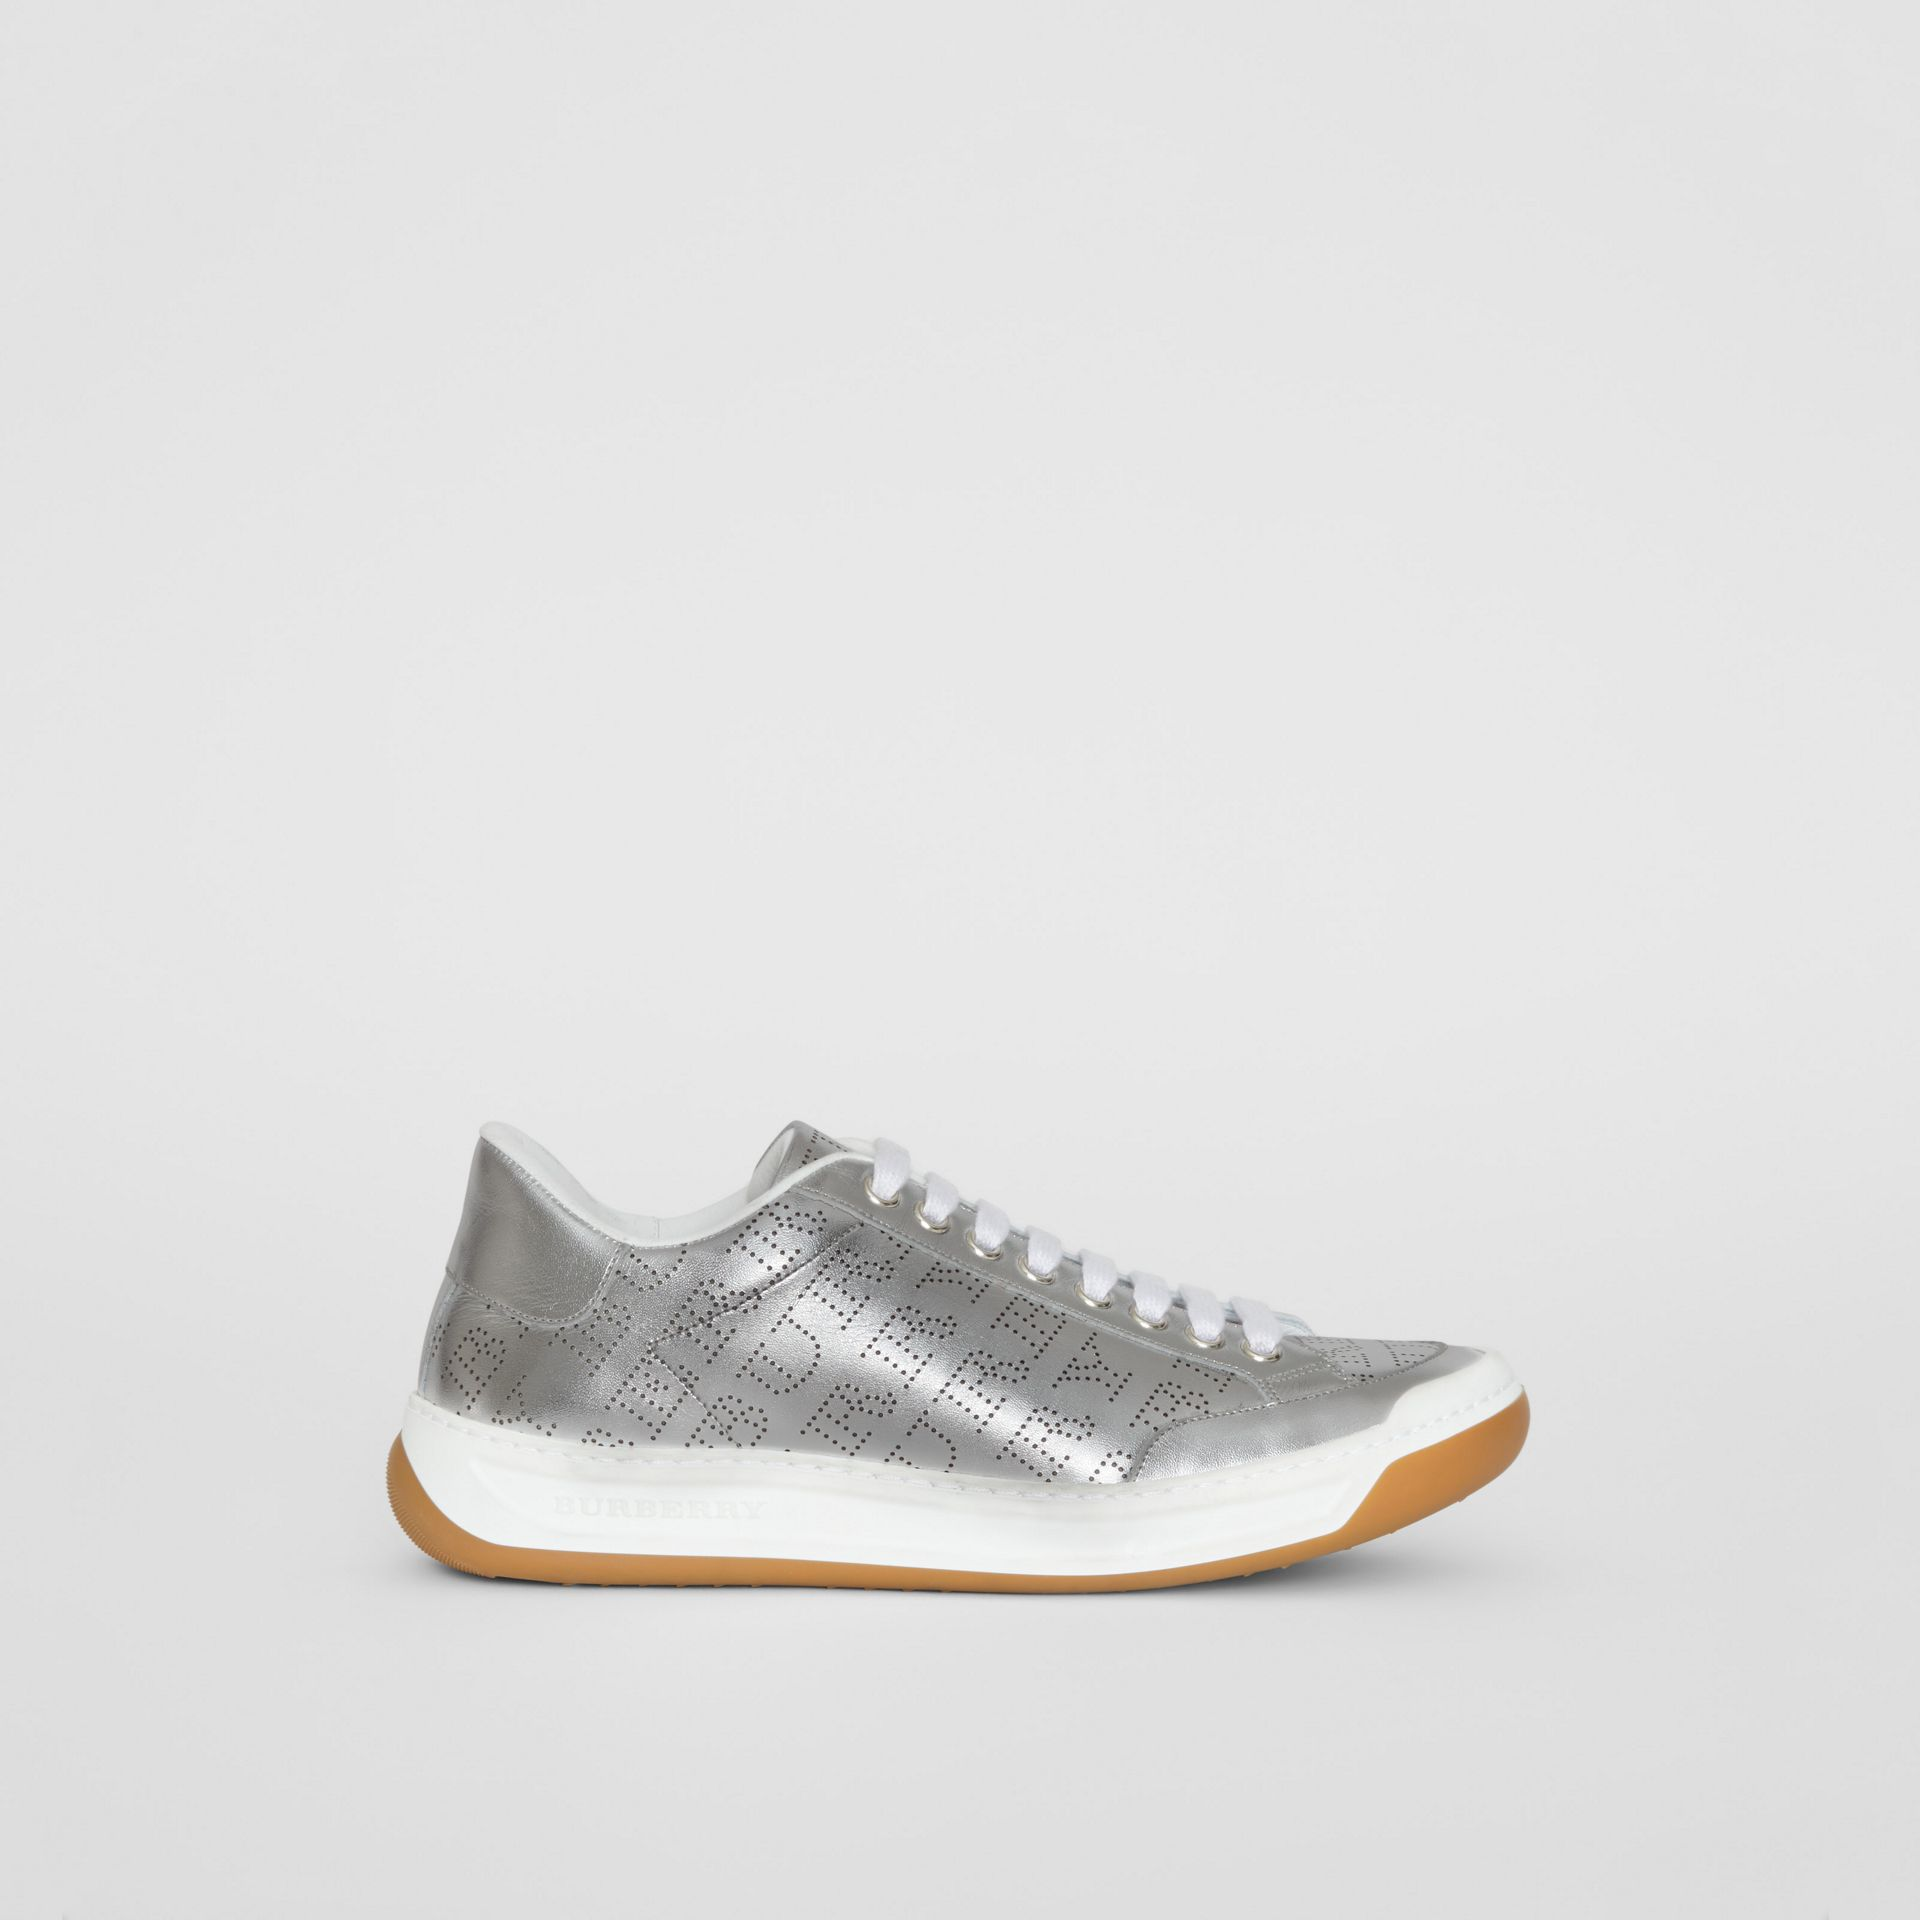 Perforated Logo Metallic Leather Sneakers in Silver Grey - Women | Burberry - gallery image 5